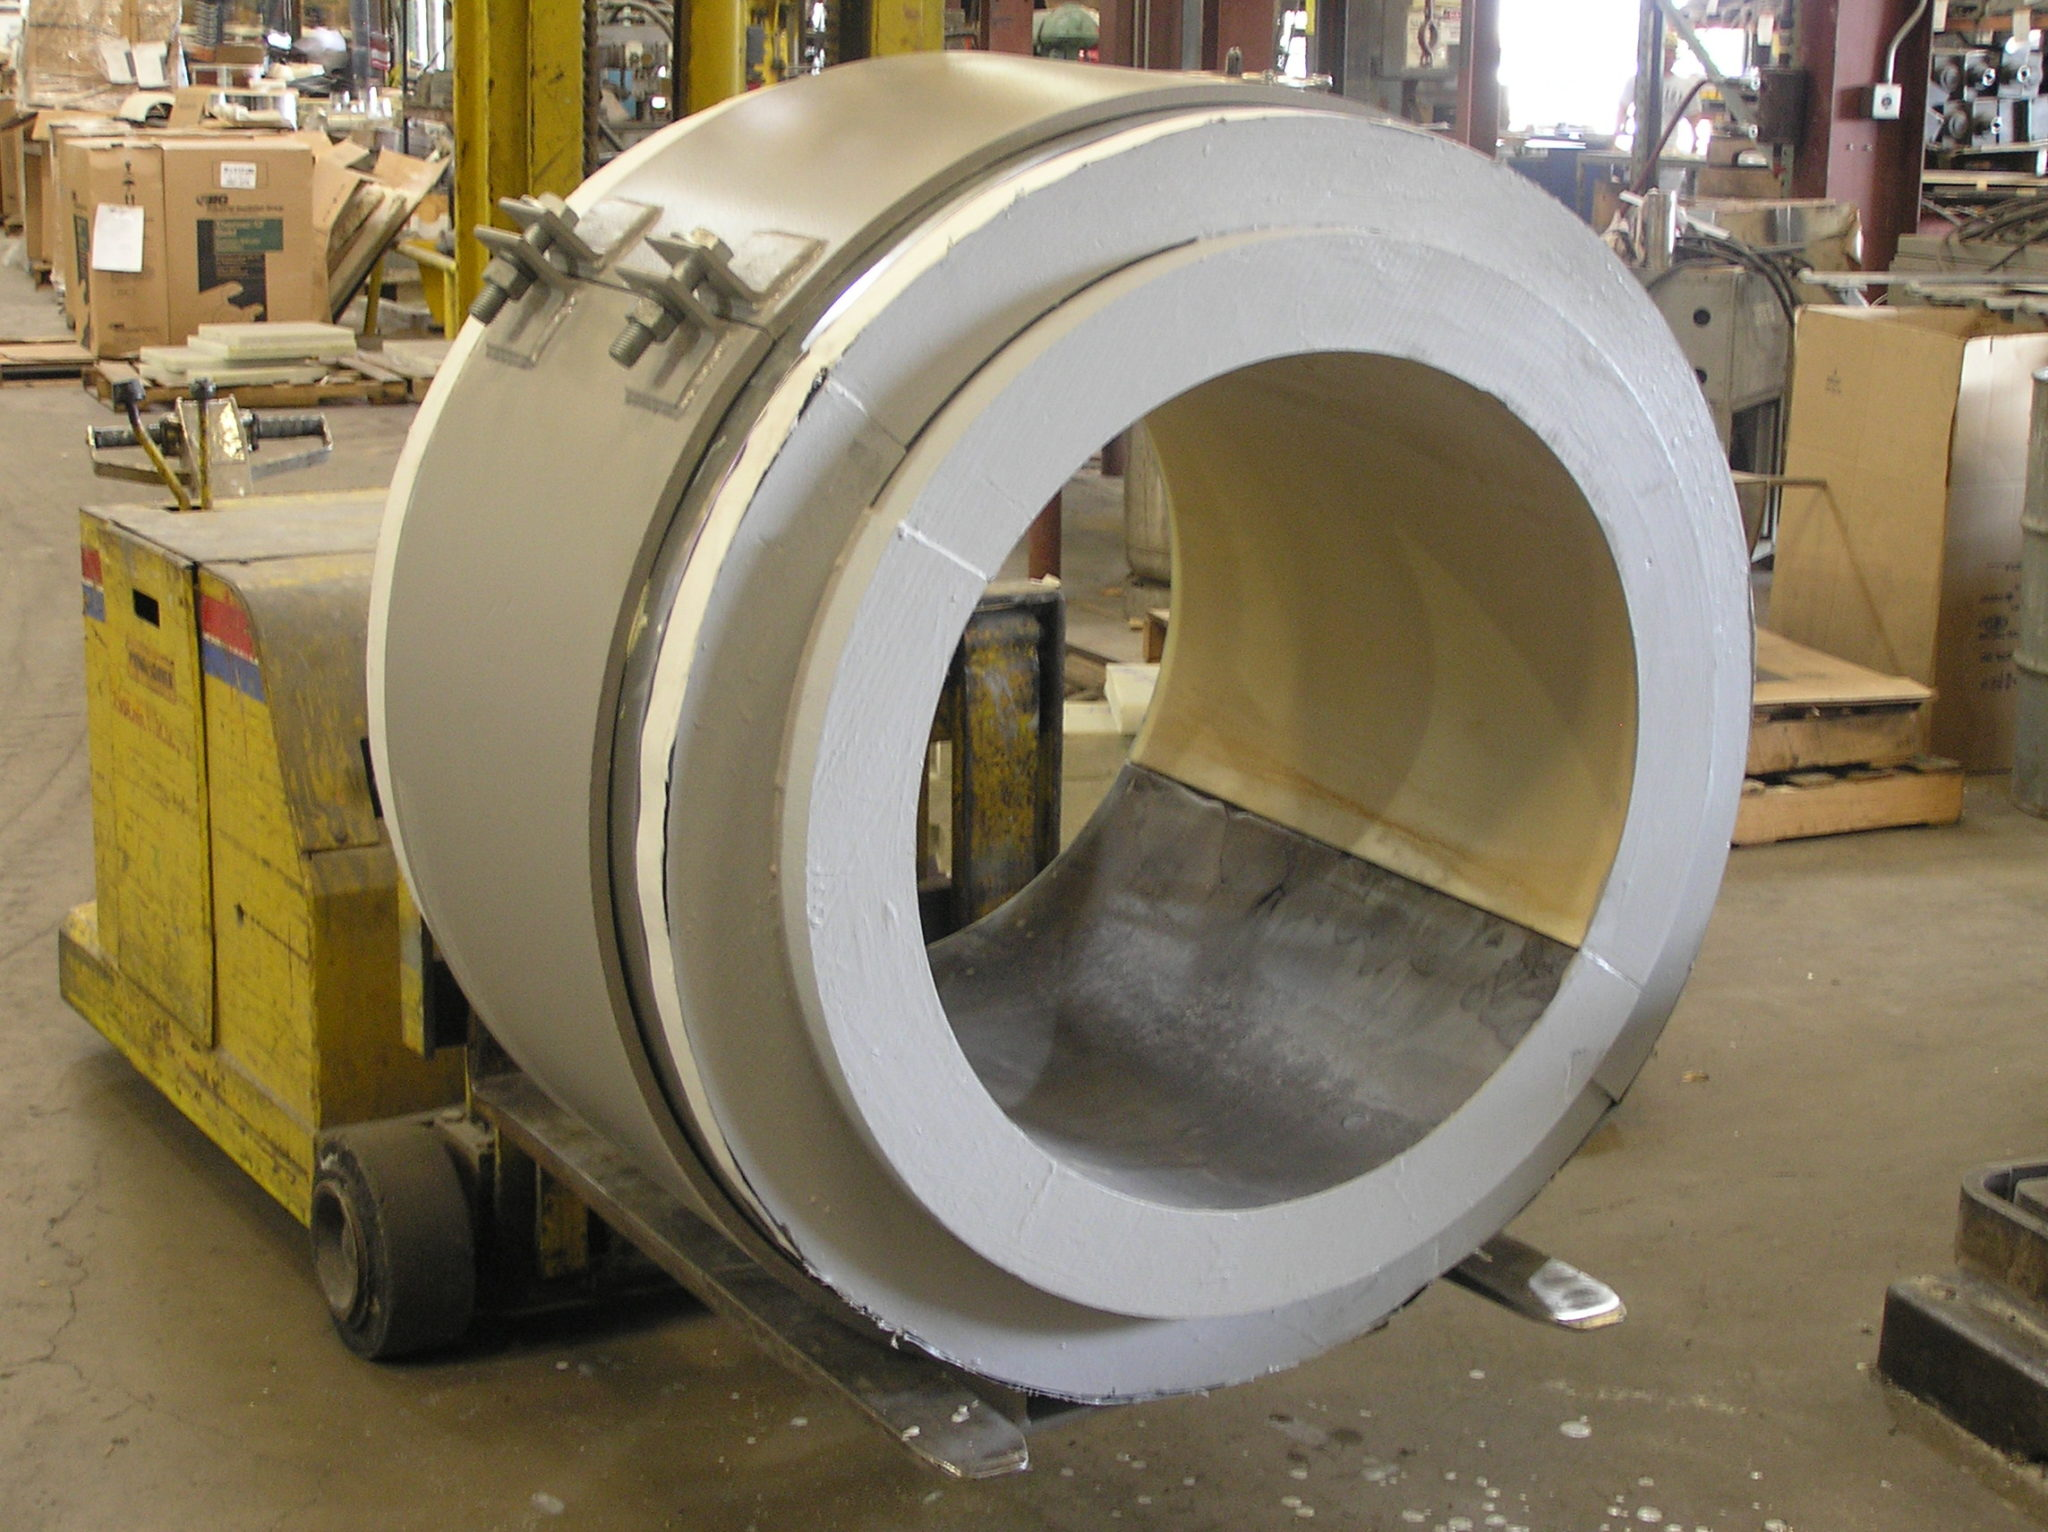 Cold Insulated Pipe Shoes for an LNG Plant